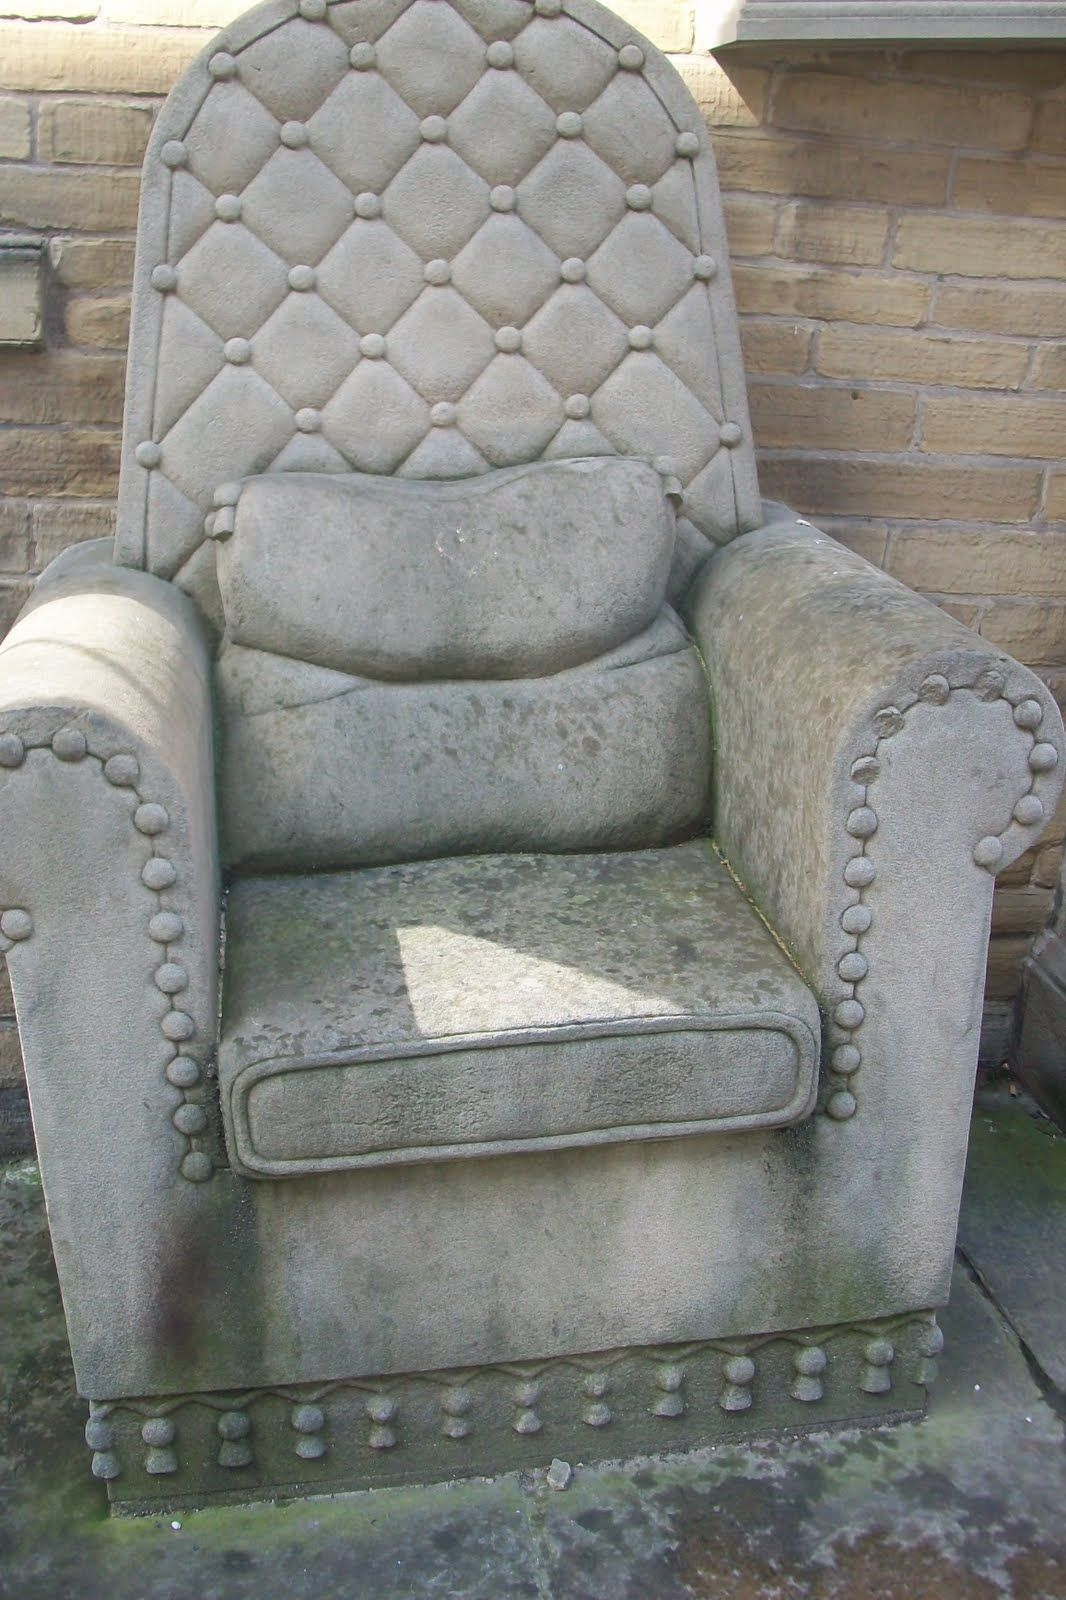 old chair covered in concrete a layer at a time recycle recycle